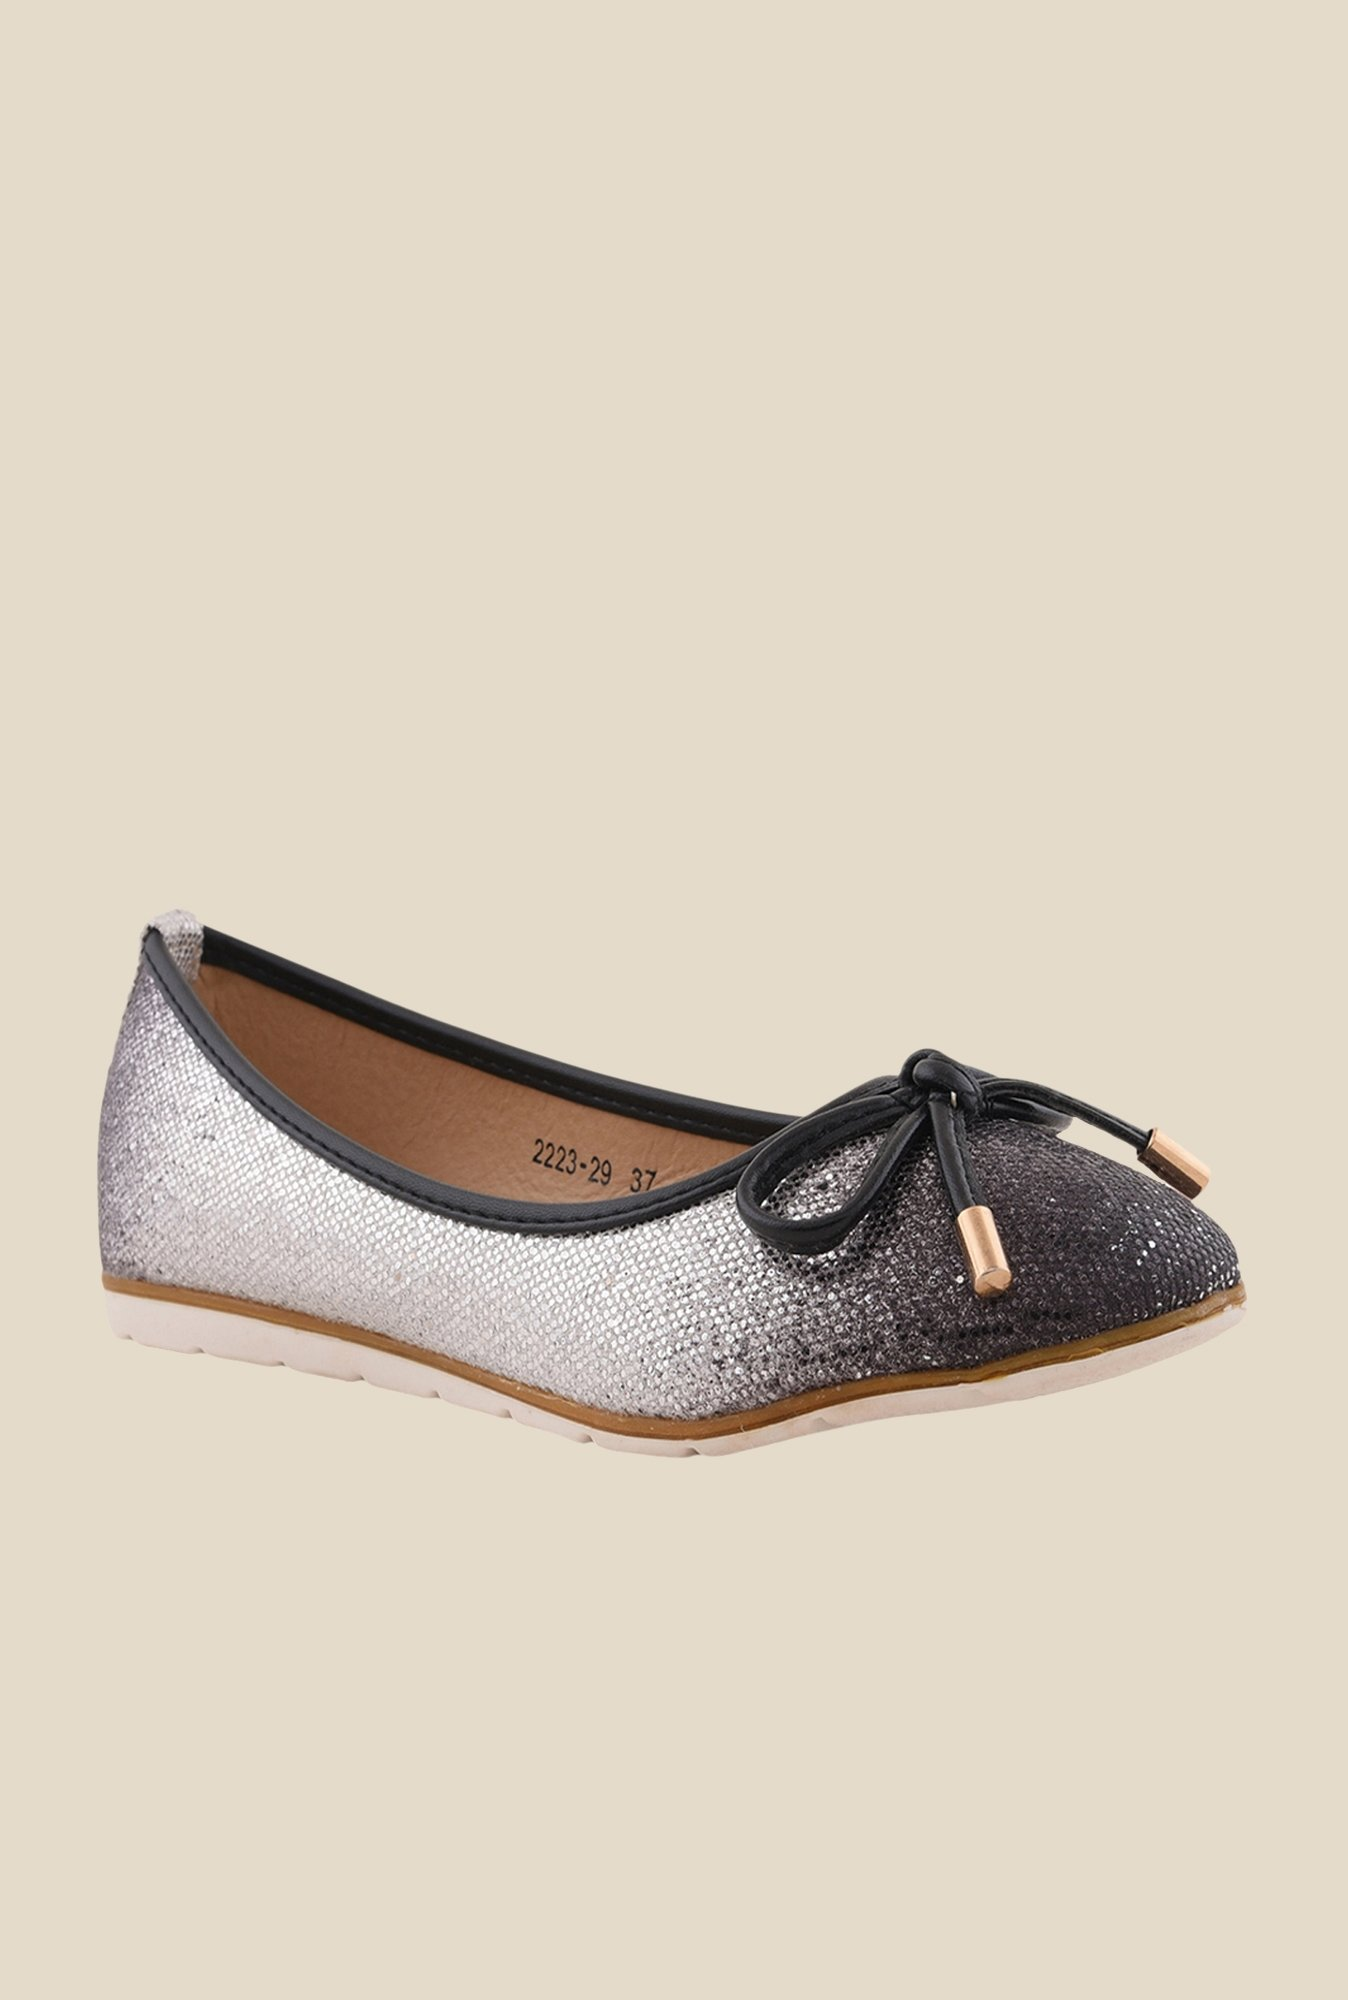 Bruno Manetti Black & Silver Flat Ballets